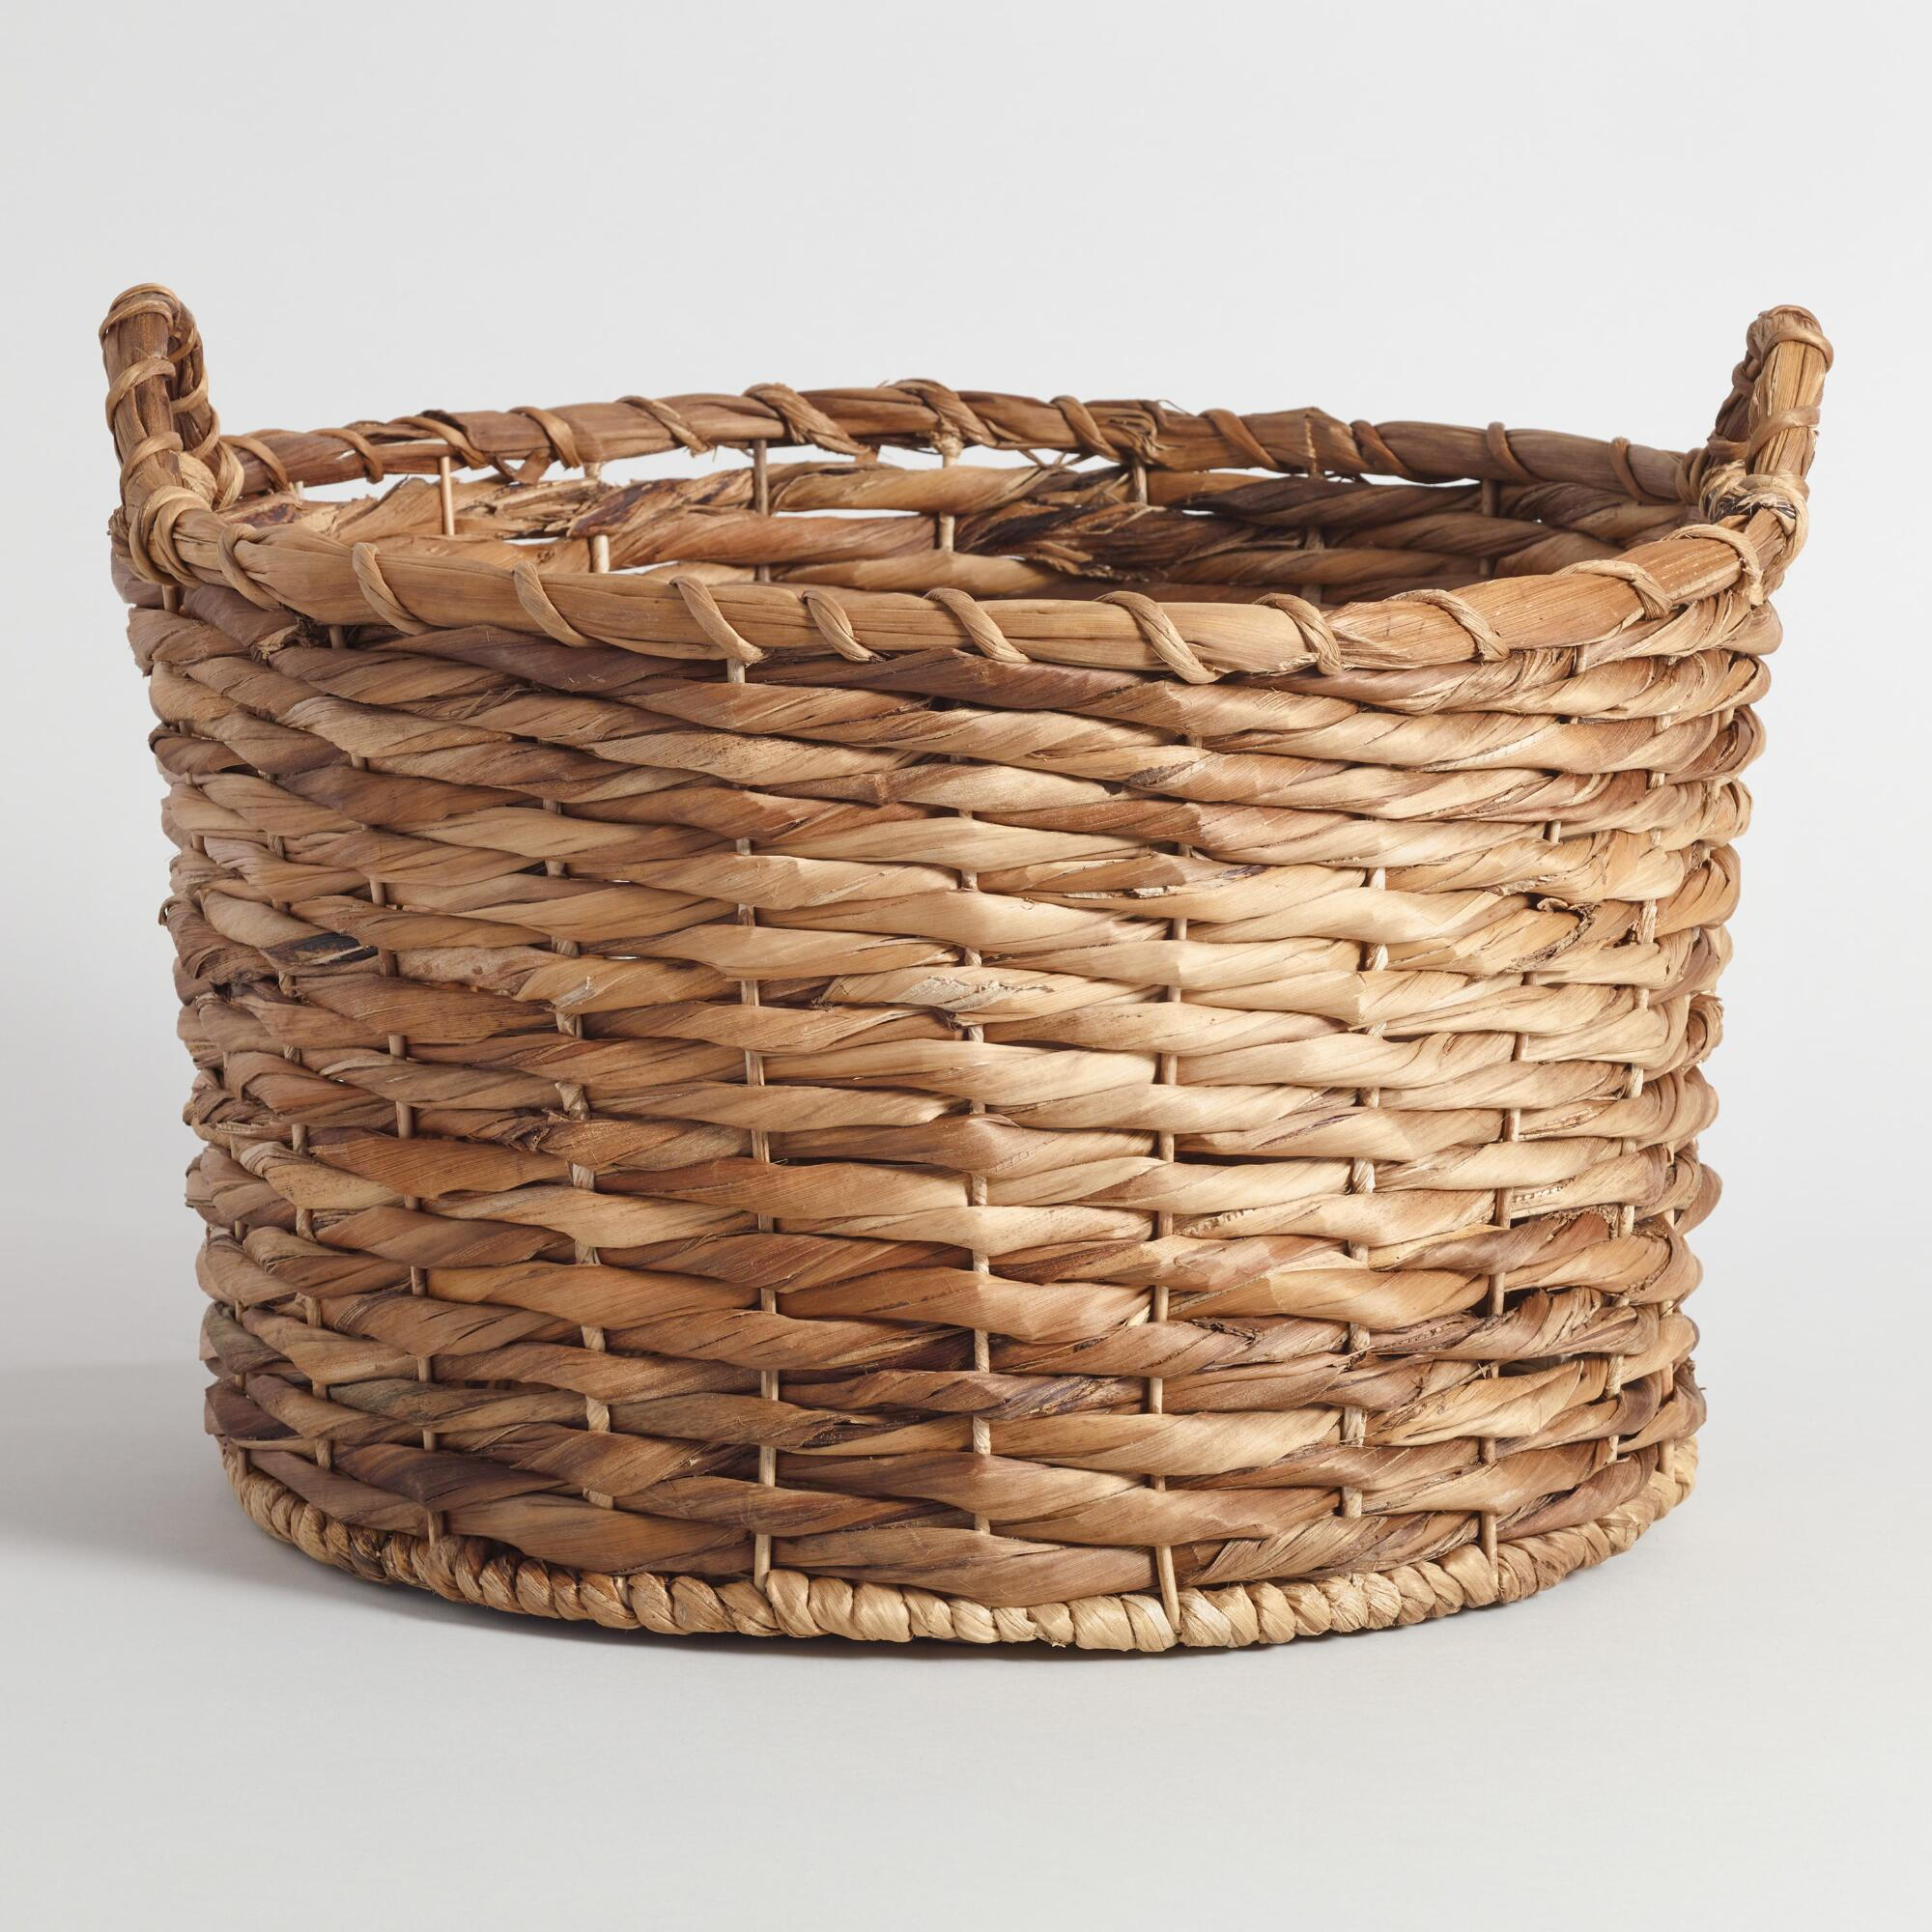 Basket Weaving With Leaves : Banana leaf round brooklyn tote basket world market